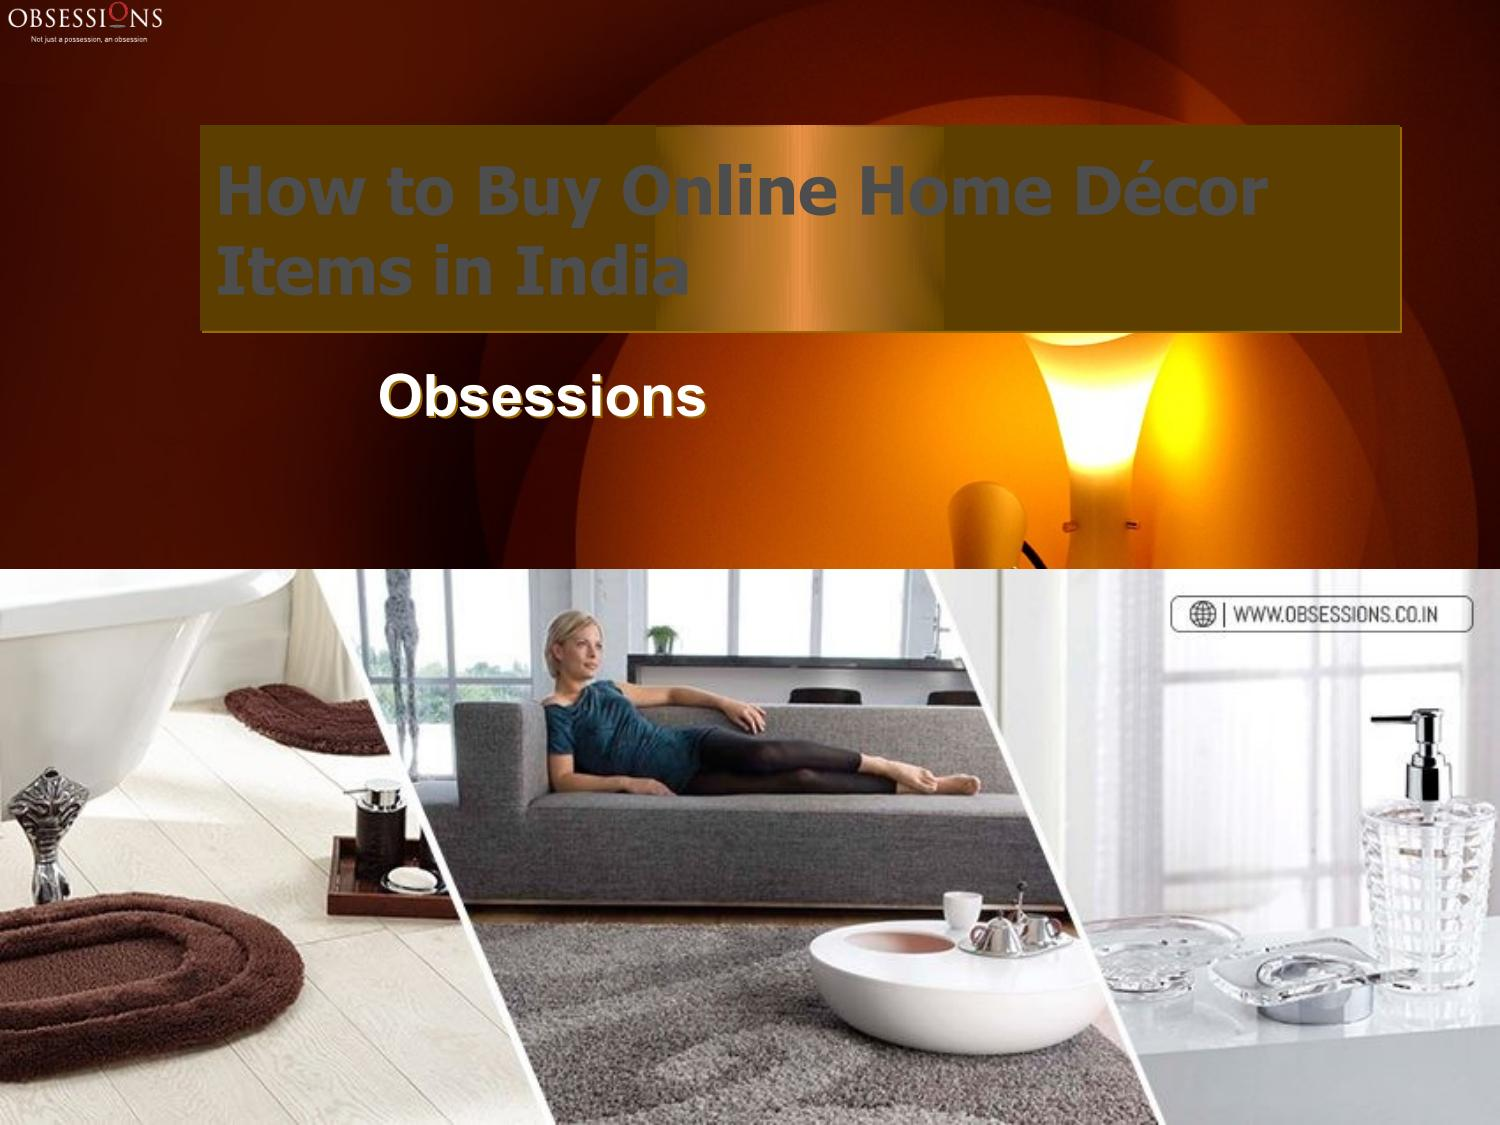 How To Buy Online Home Decor Items In India By